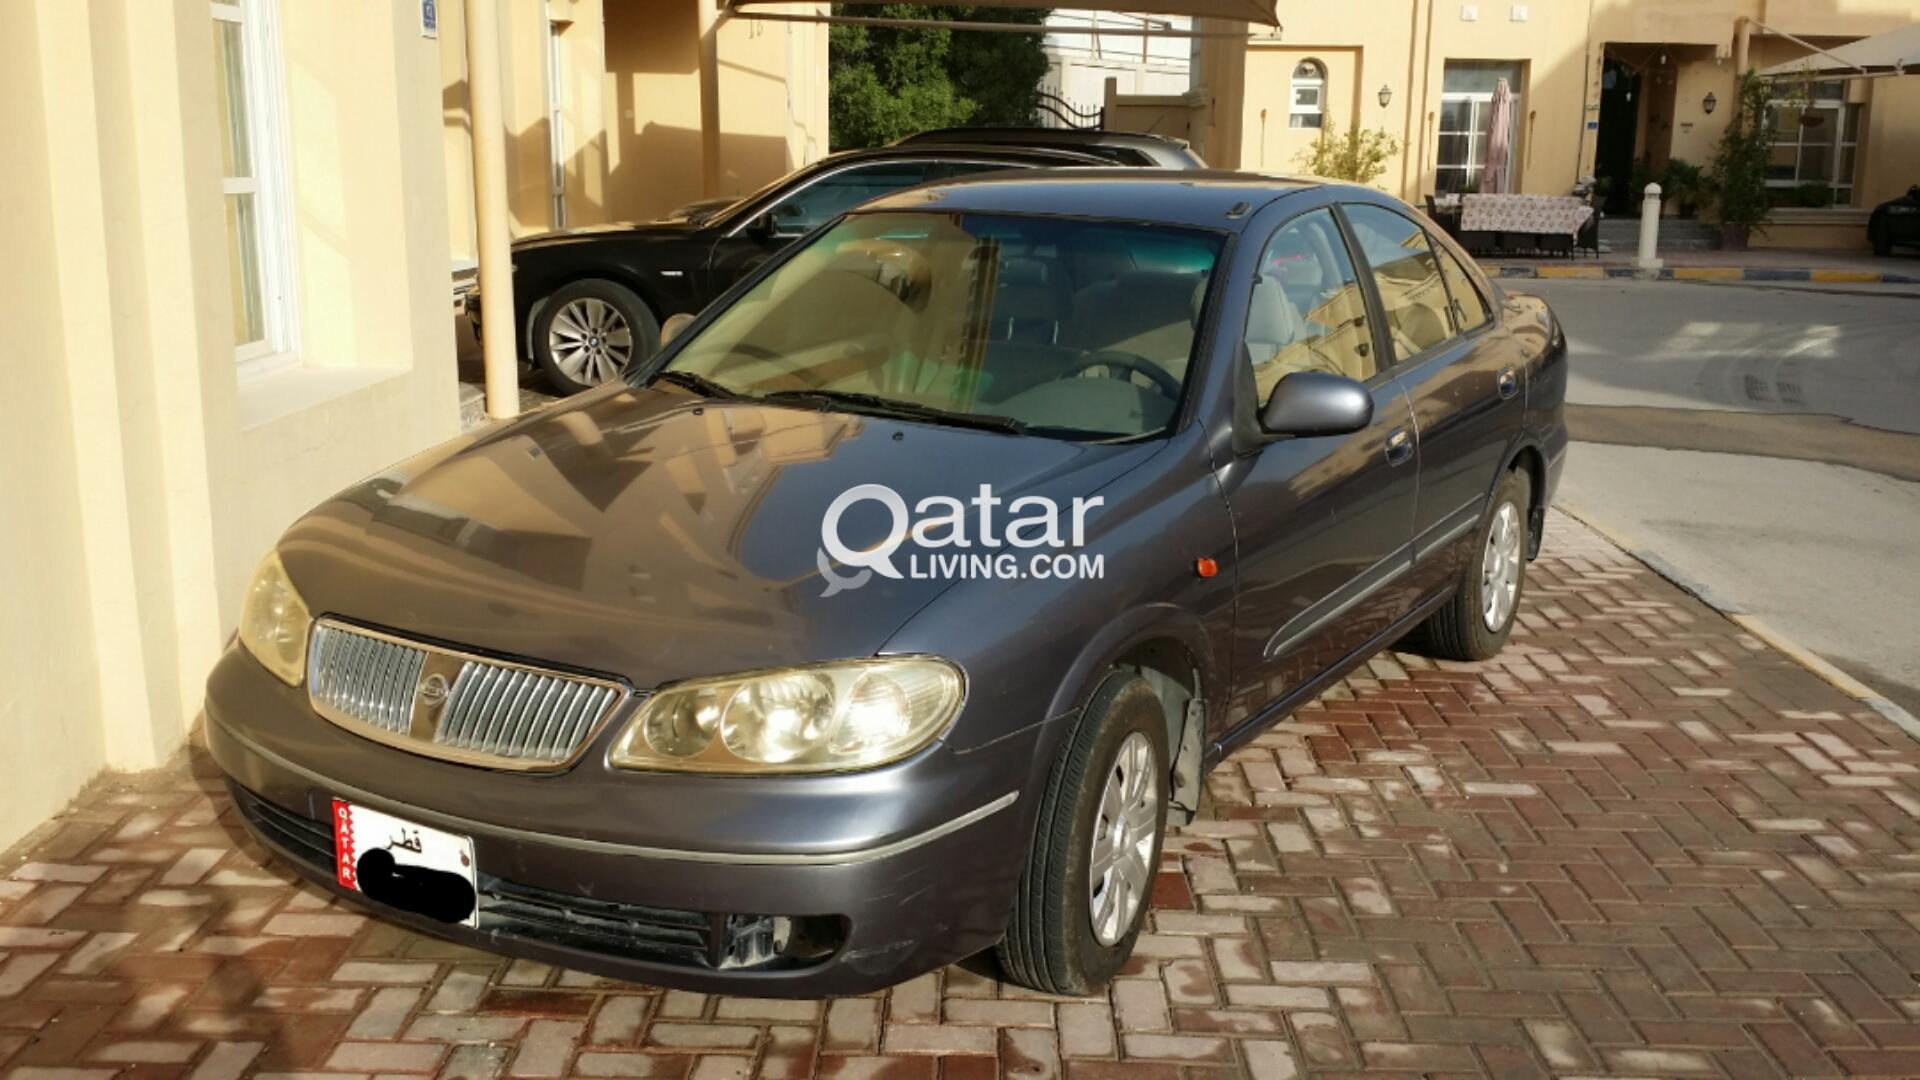 Nissan Sunny 2005 Fully Automatic Japan Engine For Sale Qatar Living